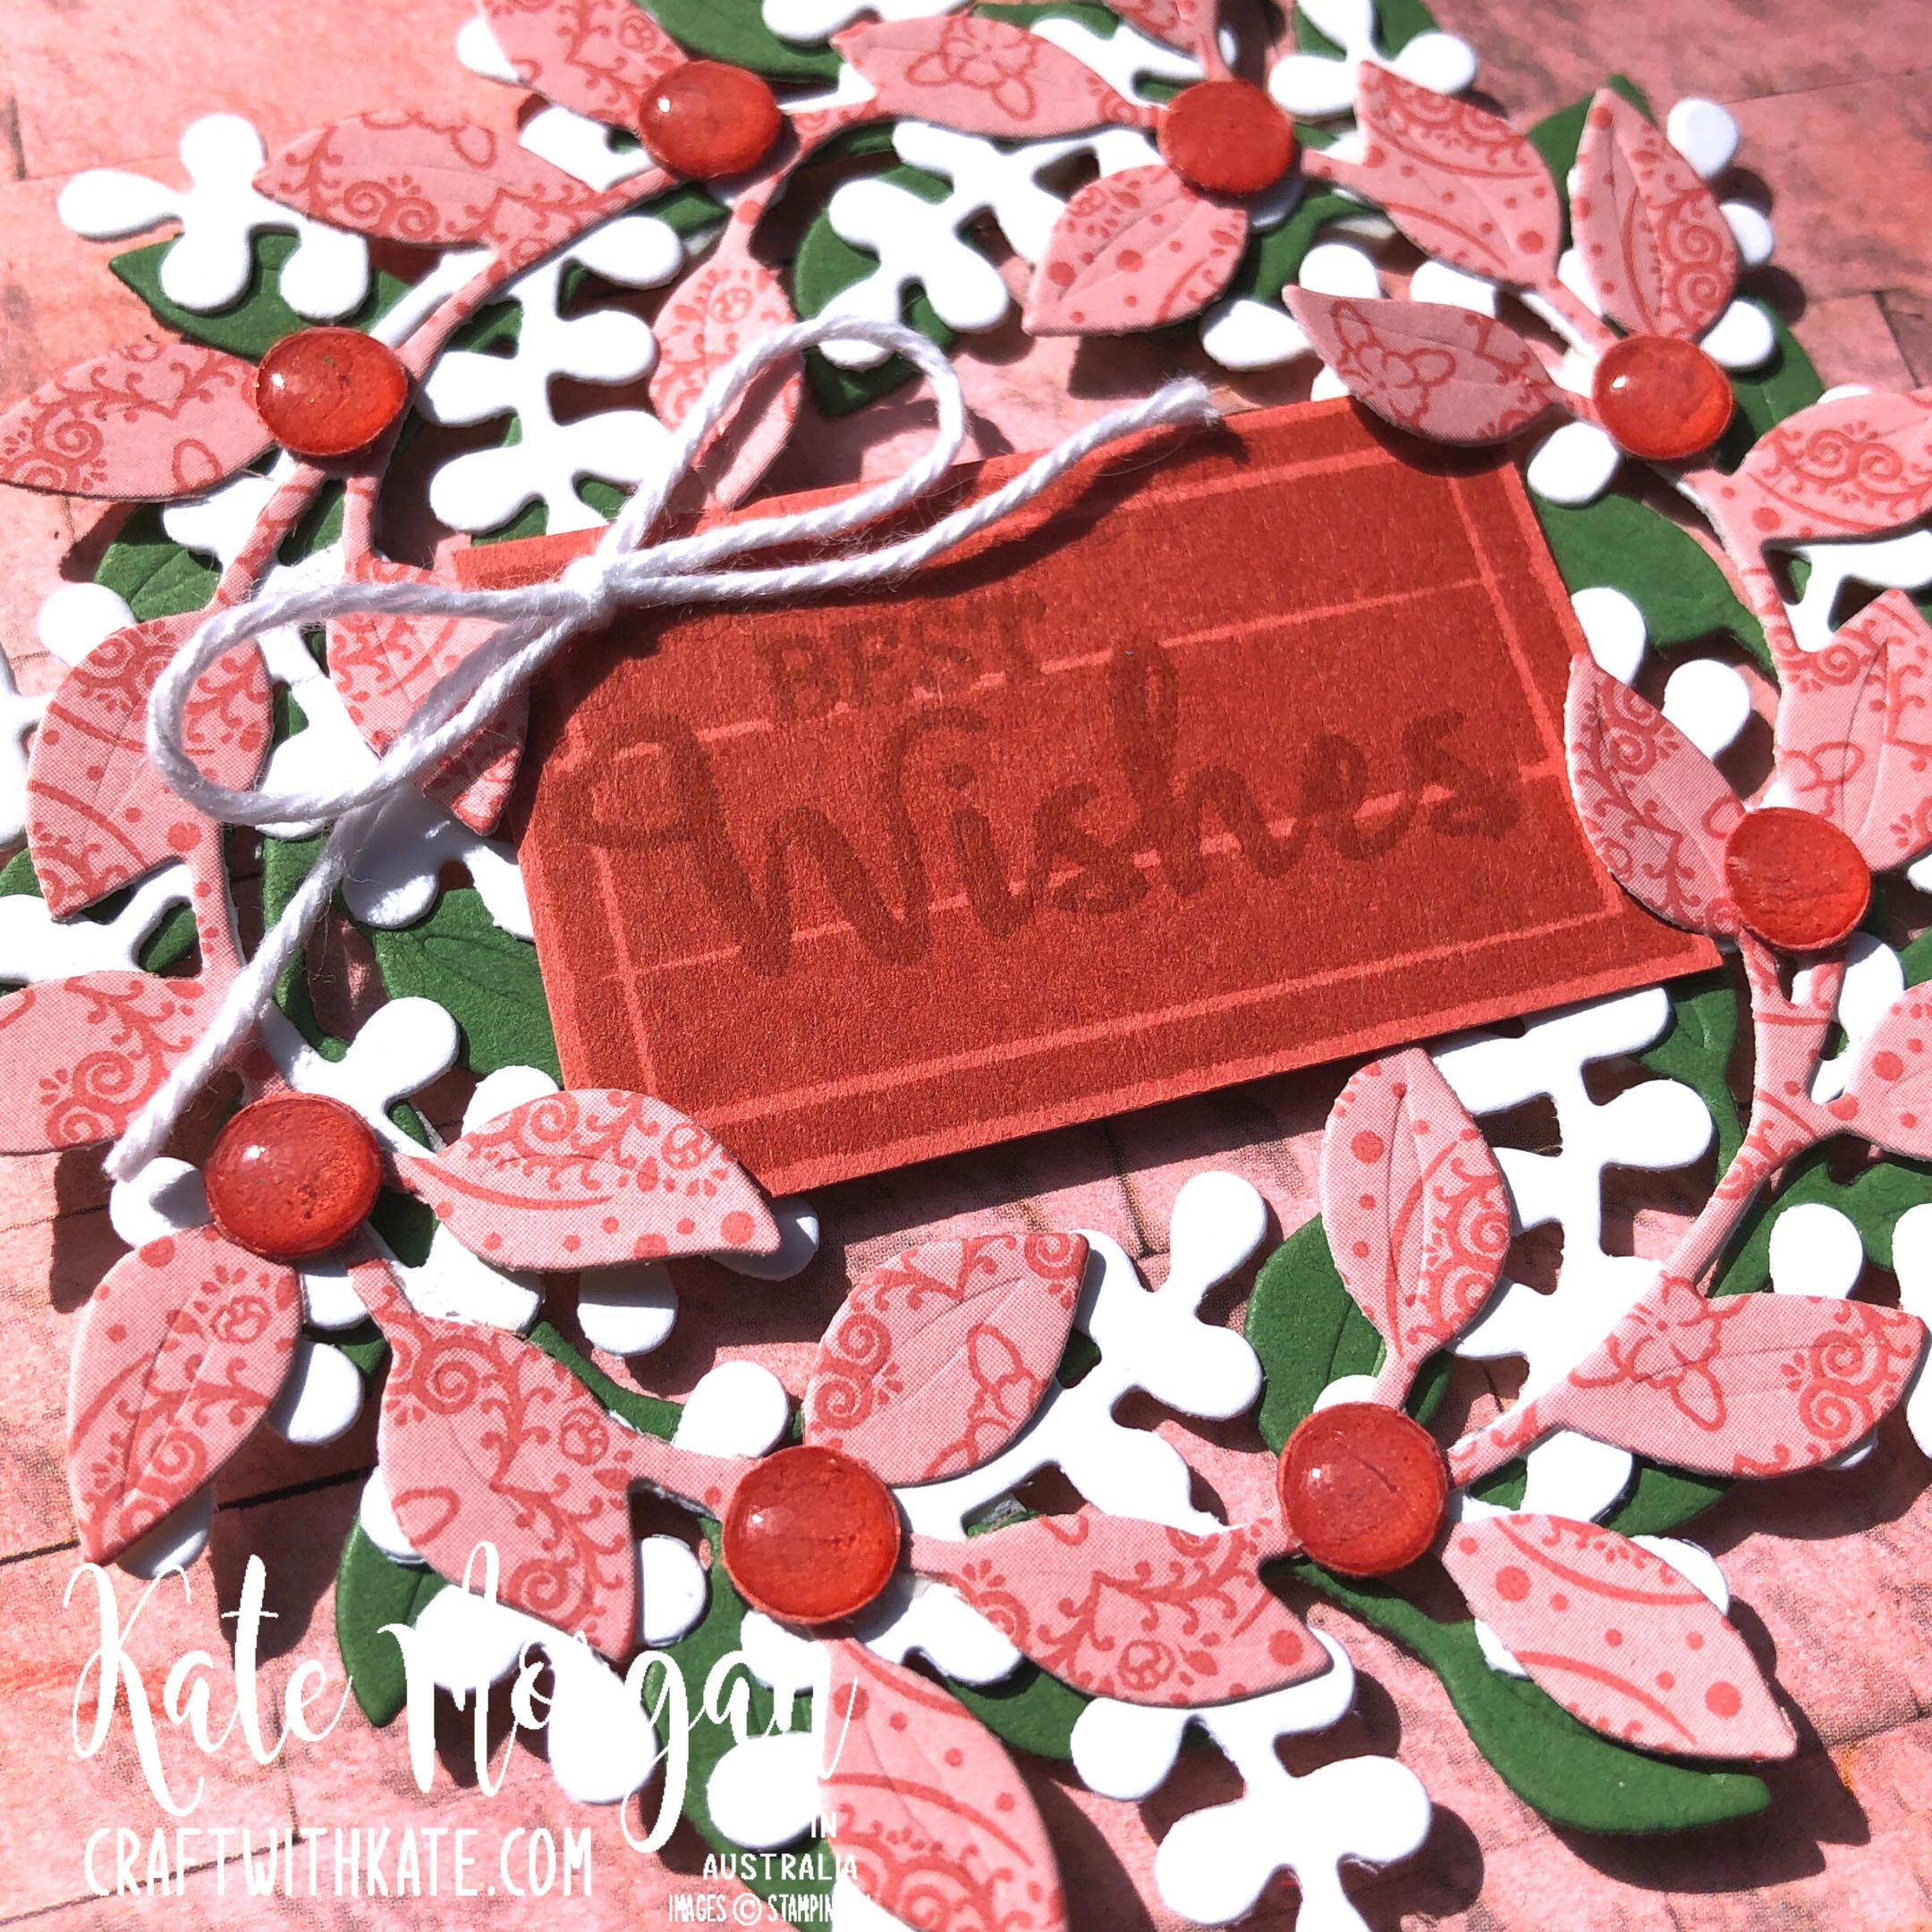 Arrange a Wreath for Colour Creations Showcase Terracotta Tile card Stampin Up by Kate Morgan, Australia 2021 closeup